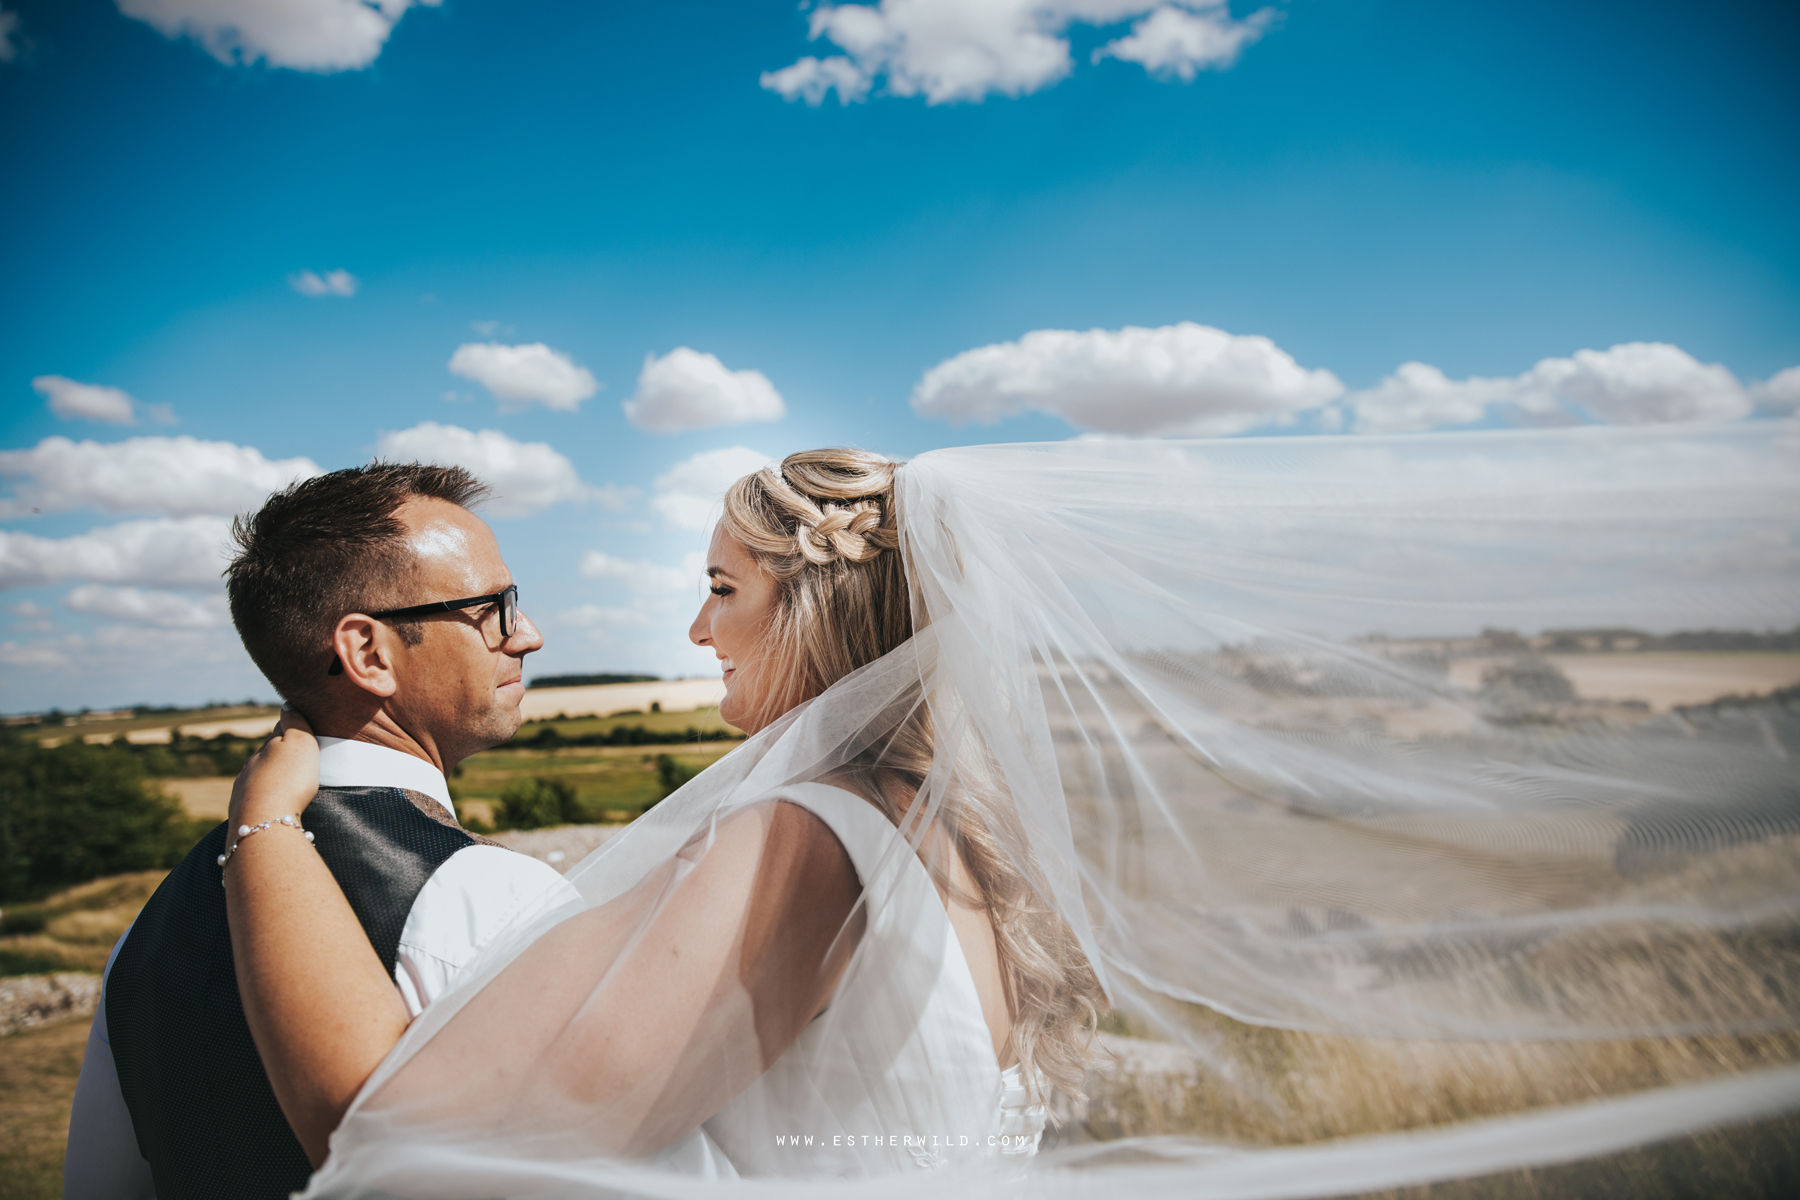 Swaffham_Wedding_Castle_Acre_Norfolk_Esther_Wild_Photographer_Wedding_Photography_3R8A1437.jpg